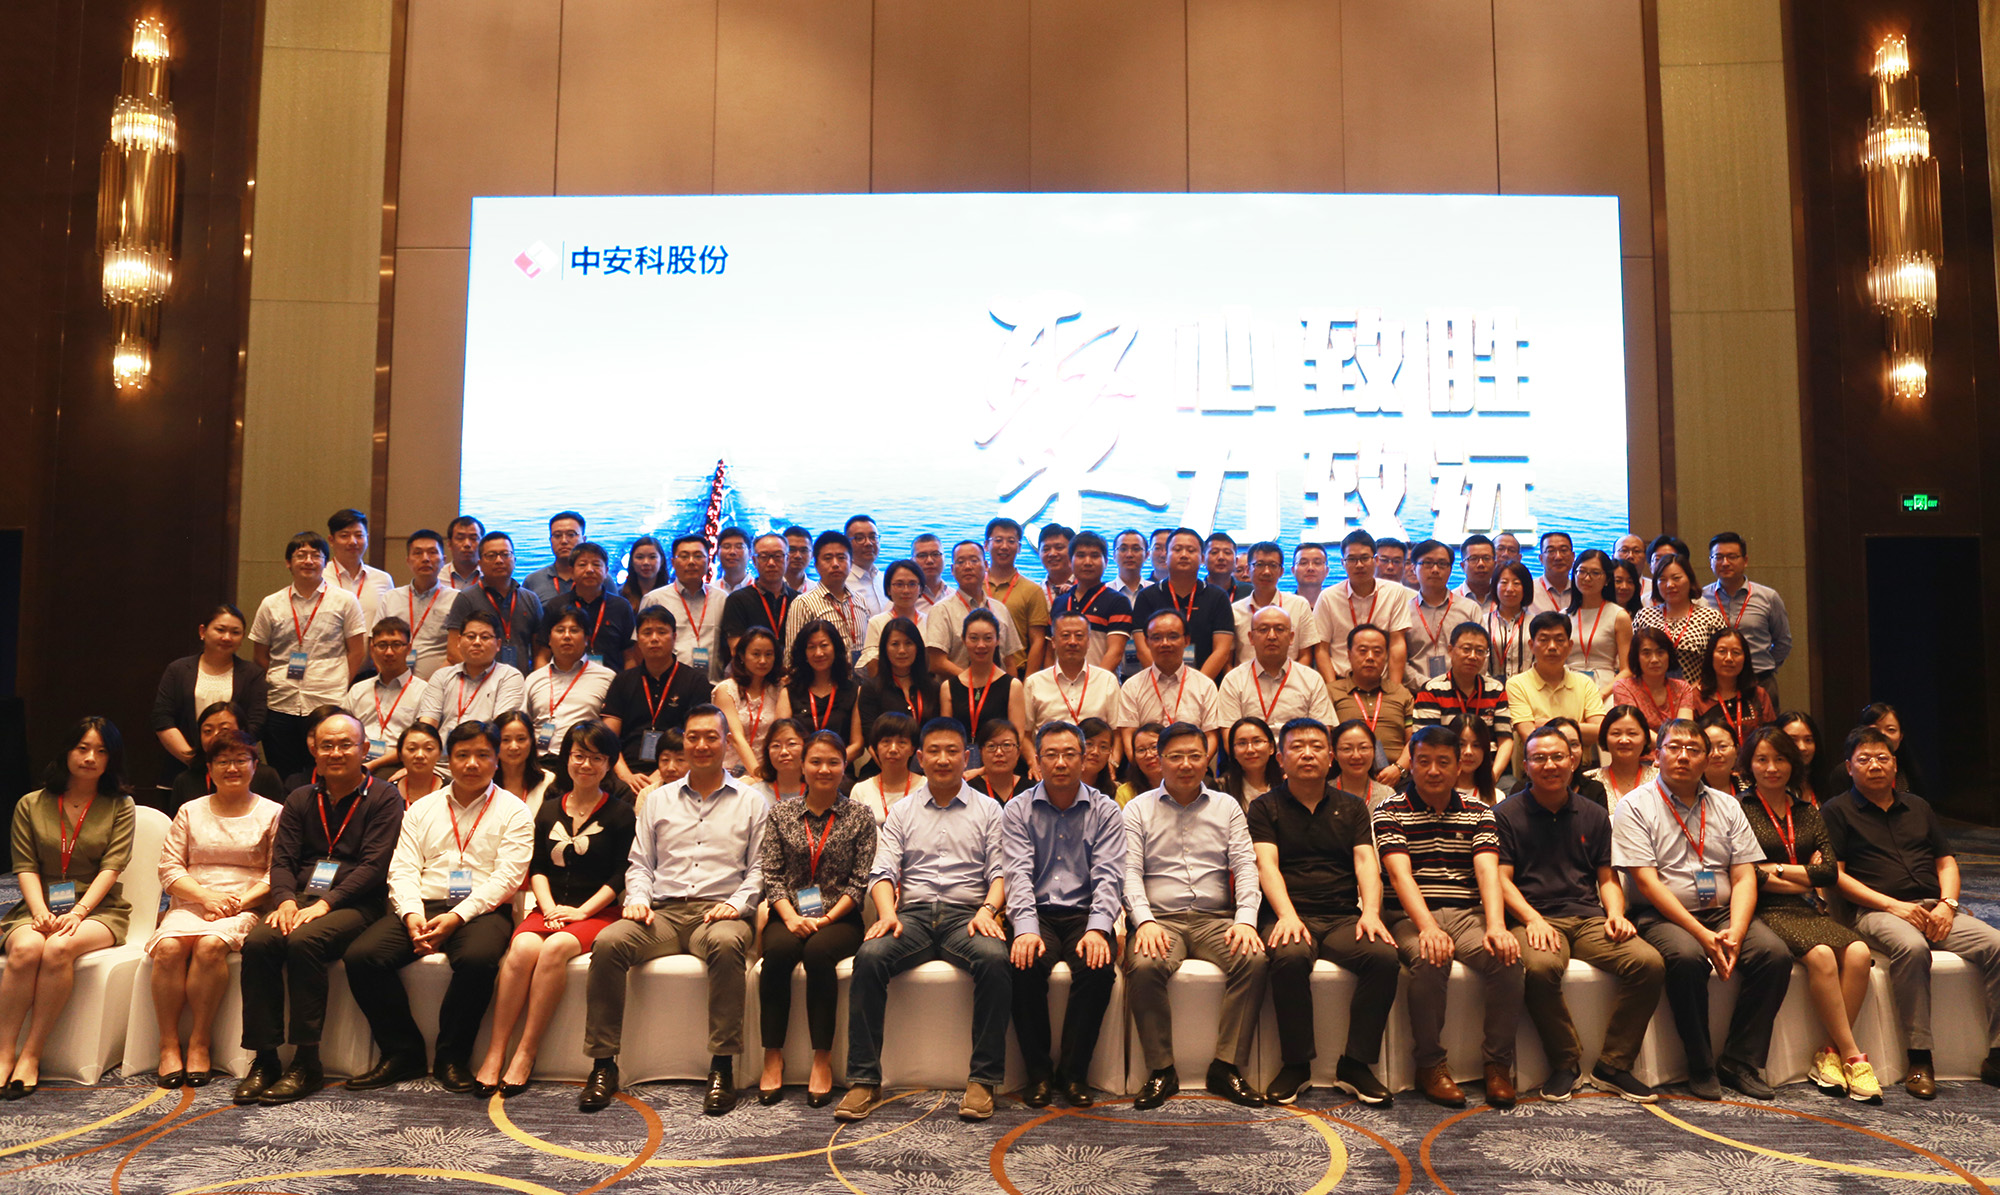 Focus to Progress and to Win: The Enlarged Interim Operation and Management Meeting 2018 of China Security